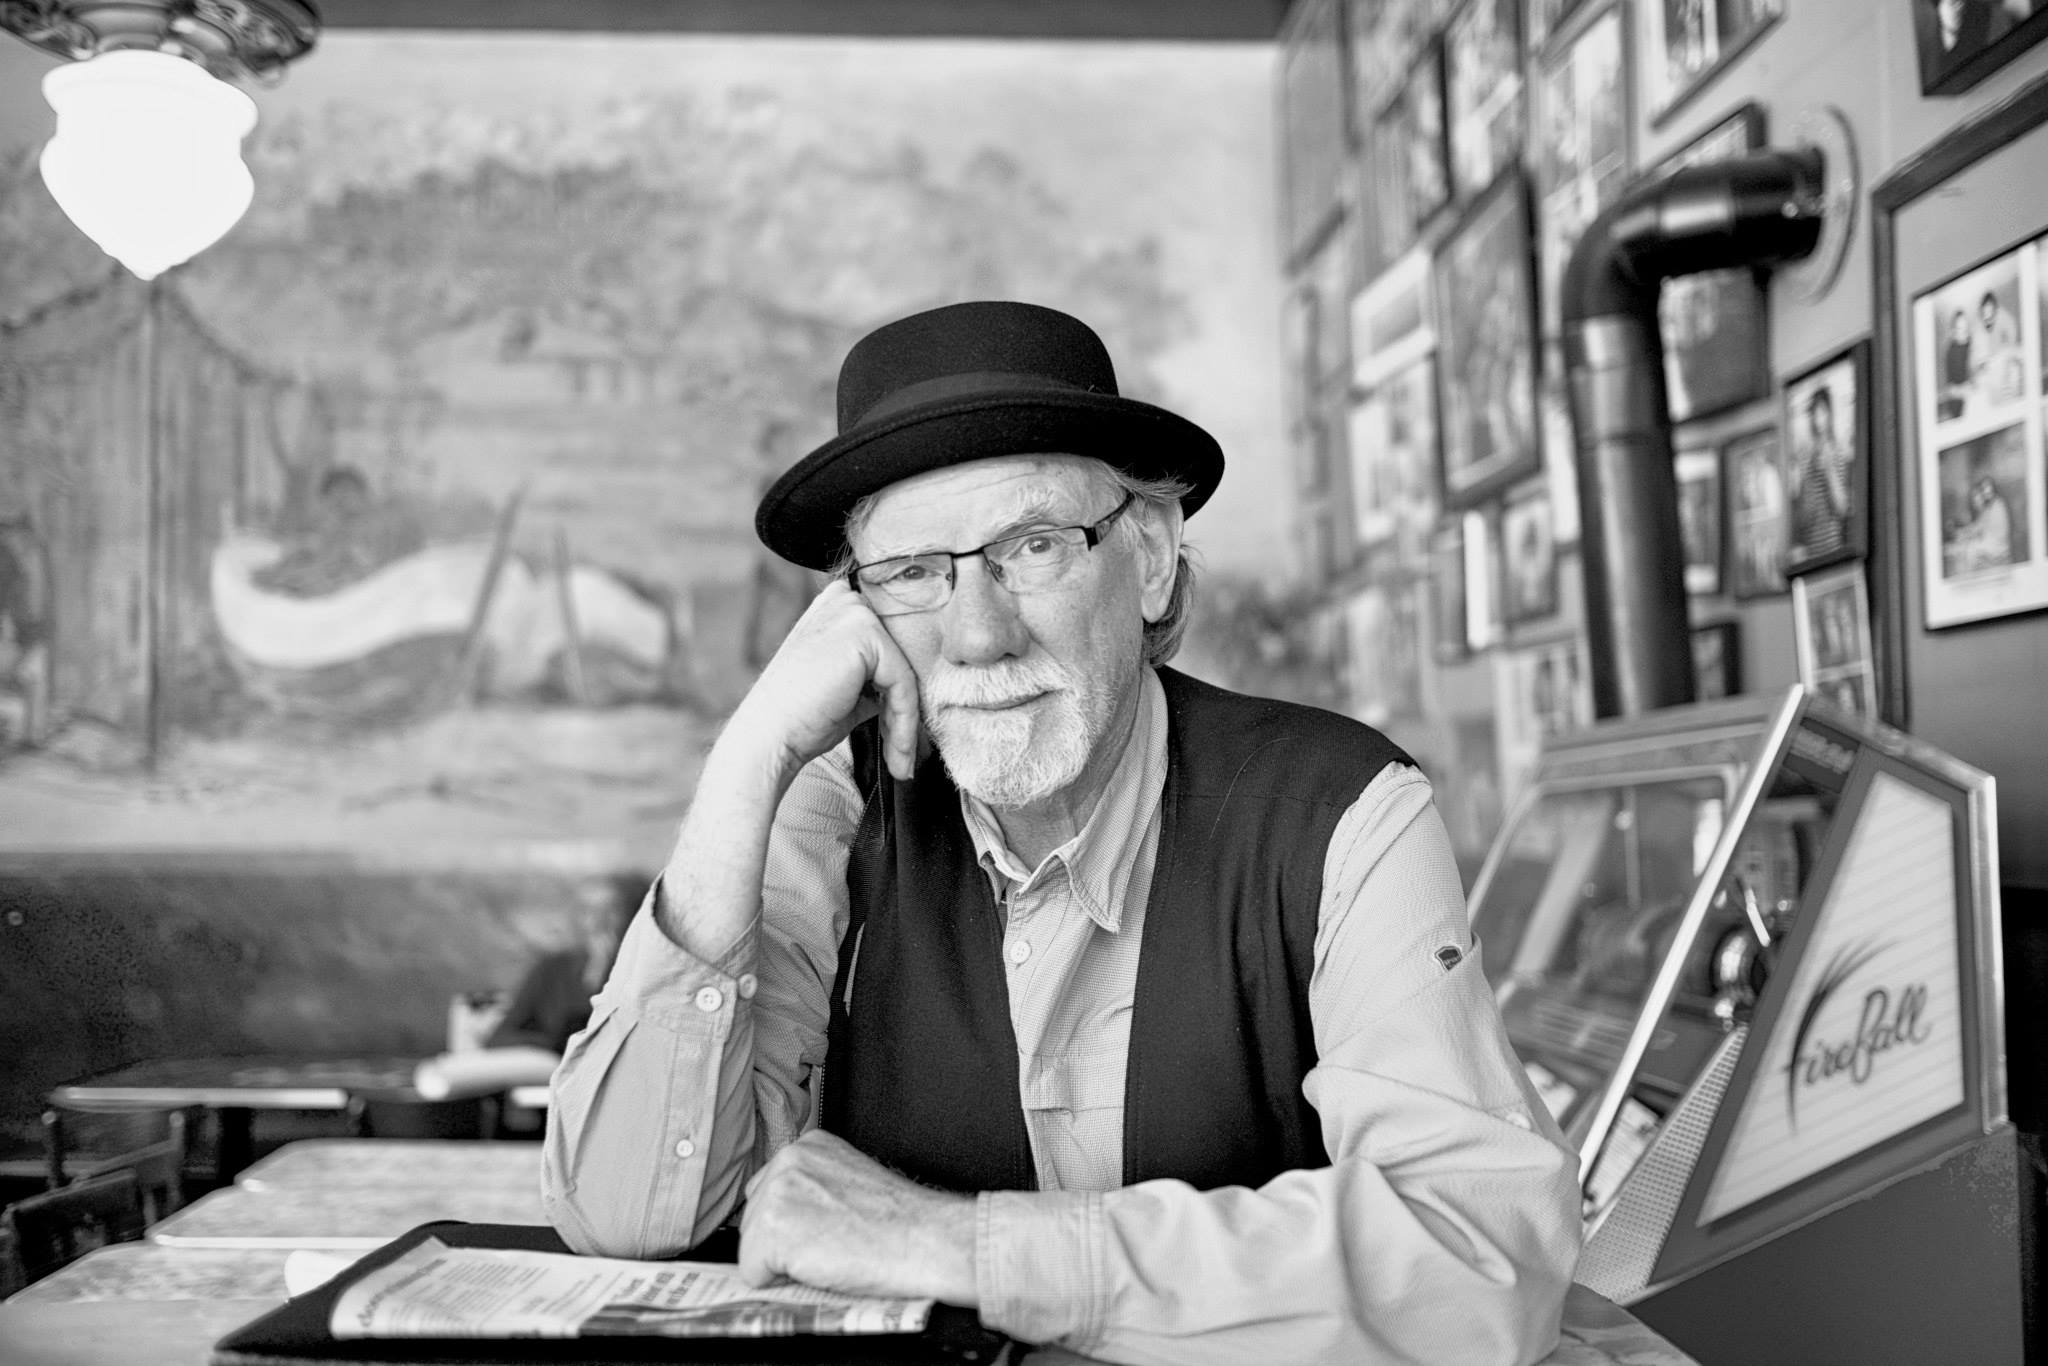 Dennis Hearne - [PHOTOGRAPHER] Dennis Hearne has been living in North Beach since 1965. He attended and worked at the San Francisco Art Institute in the late 1960's through 1978, earning a BFA and MFA. His work is included in MOMA (NYC), the British Arts Council, the Fogg Art Museum, California Historical Museum, among others. He has been awarded two NEA grants by the Federal government. His work has been exhibited at the Museum of Modern Art (NYC), San Francisco City Hall, San Francisco Mint, University of California, Southbank Centre (London), Cheltenham Art Gallery (England), Penn State, UC Bakersfield, among others. www.dennishearne.com